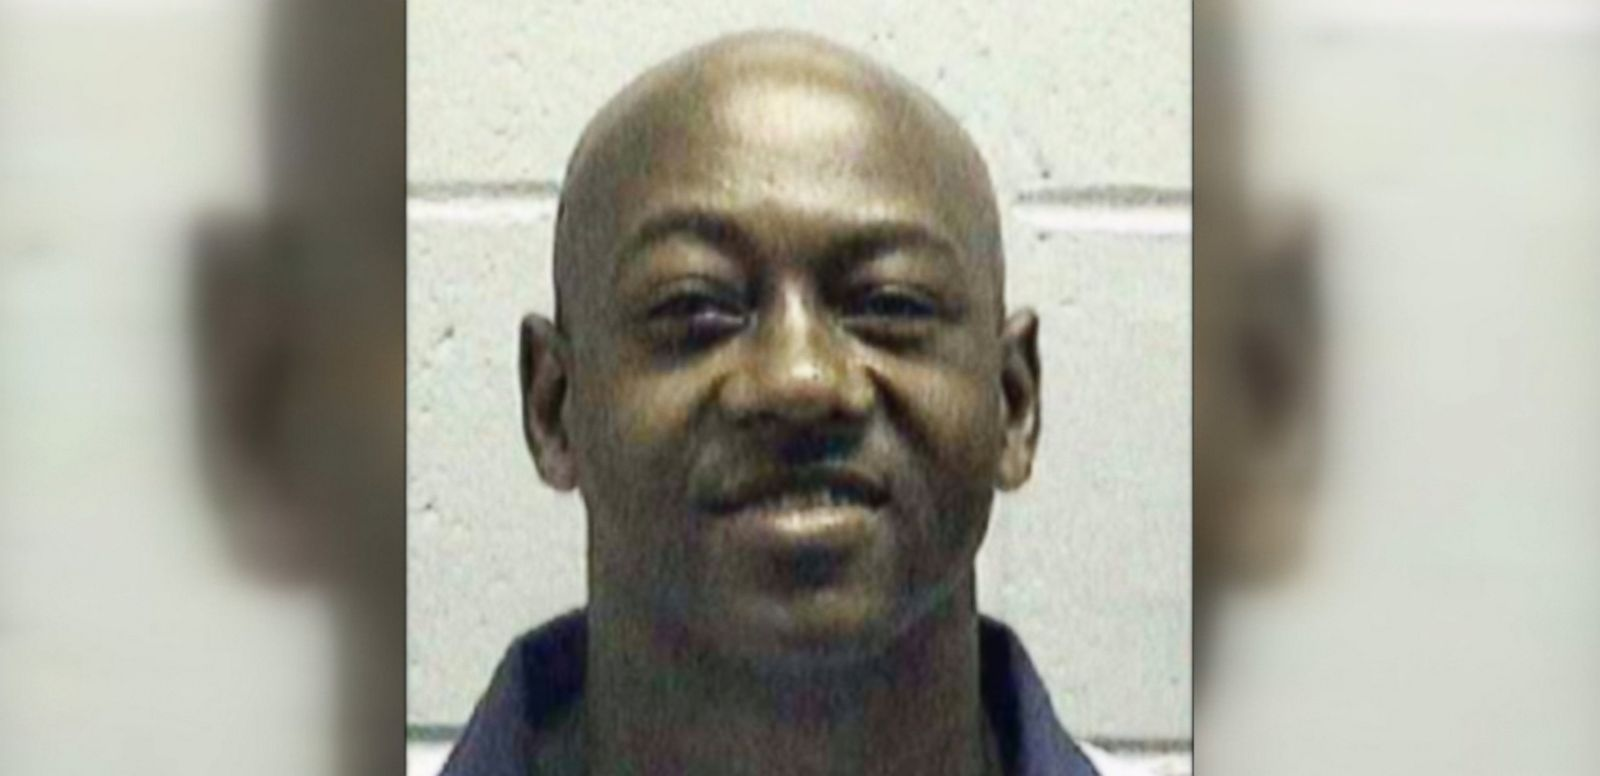 VIDEO: A black man who was convicted of capital murder and sentenced to death by an all-white jury in Georgia, has successfully convinced the Supreme Court that the jury selection in his case was racially biased three decades later.